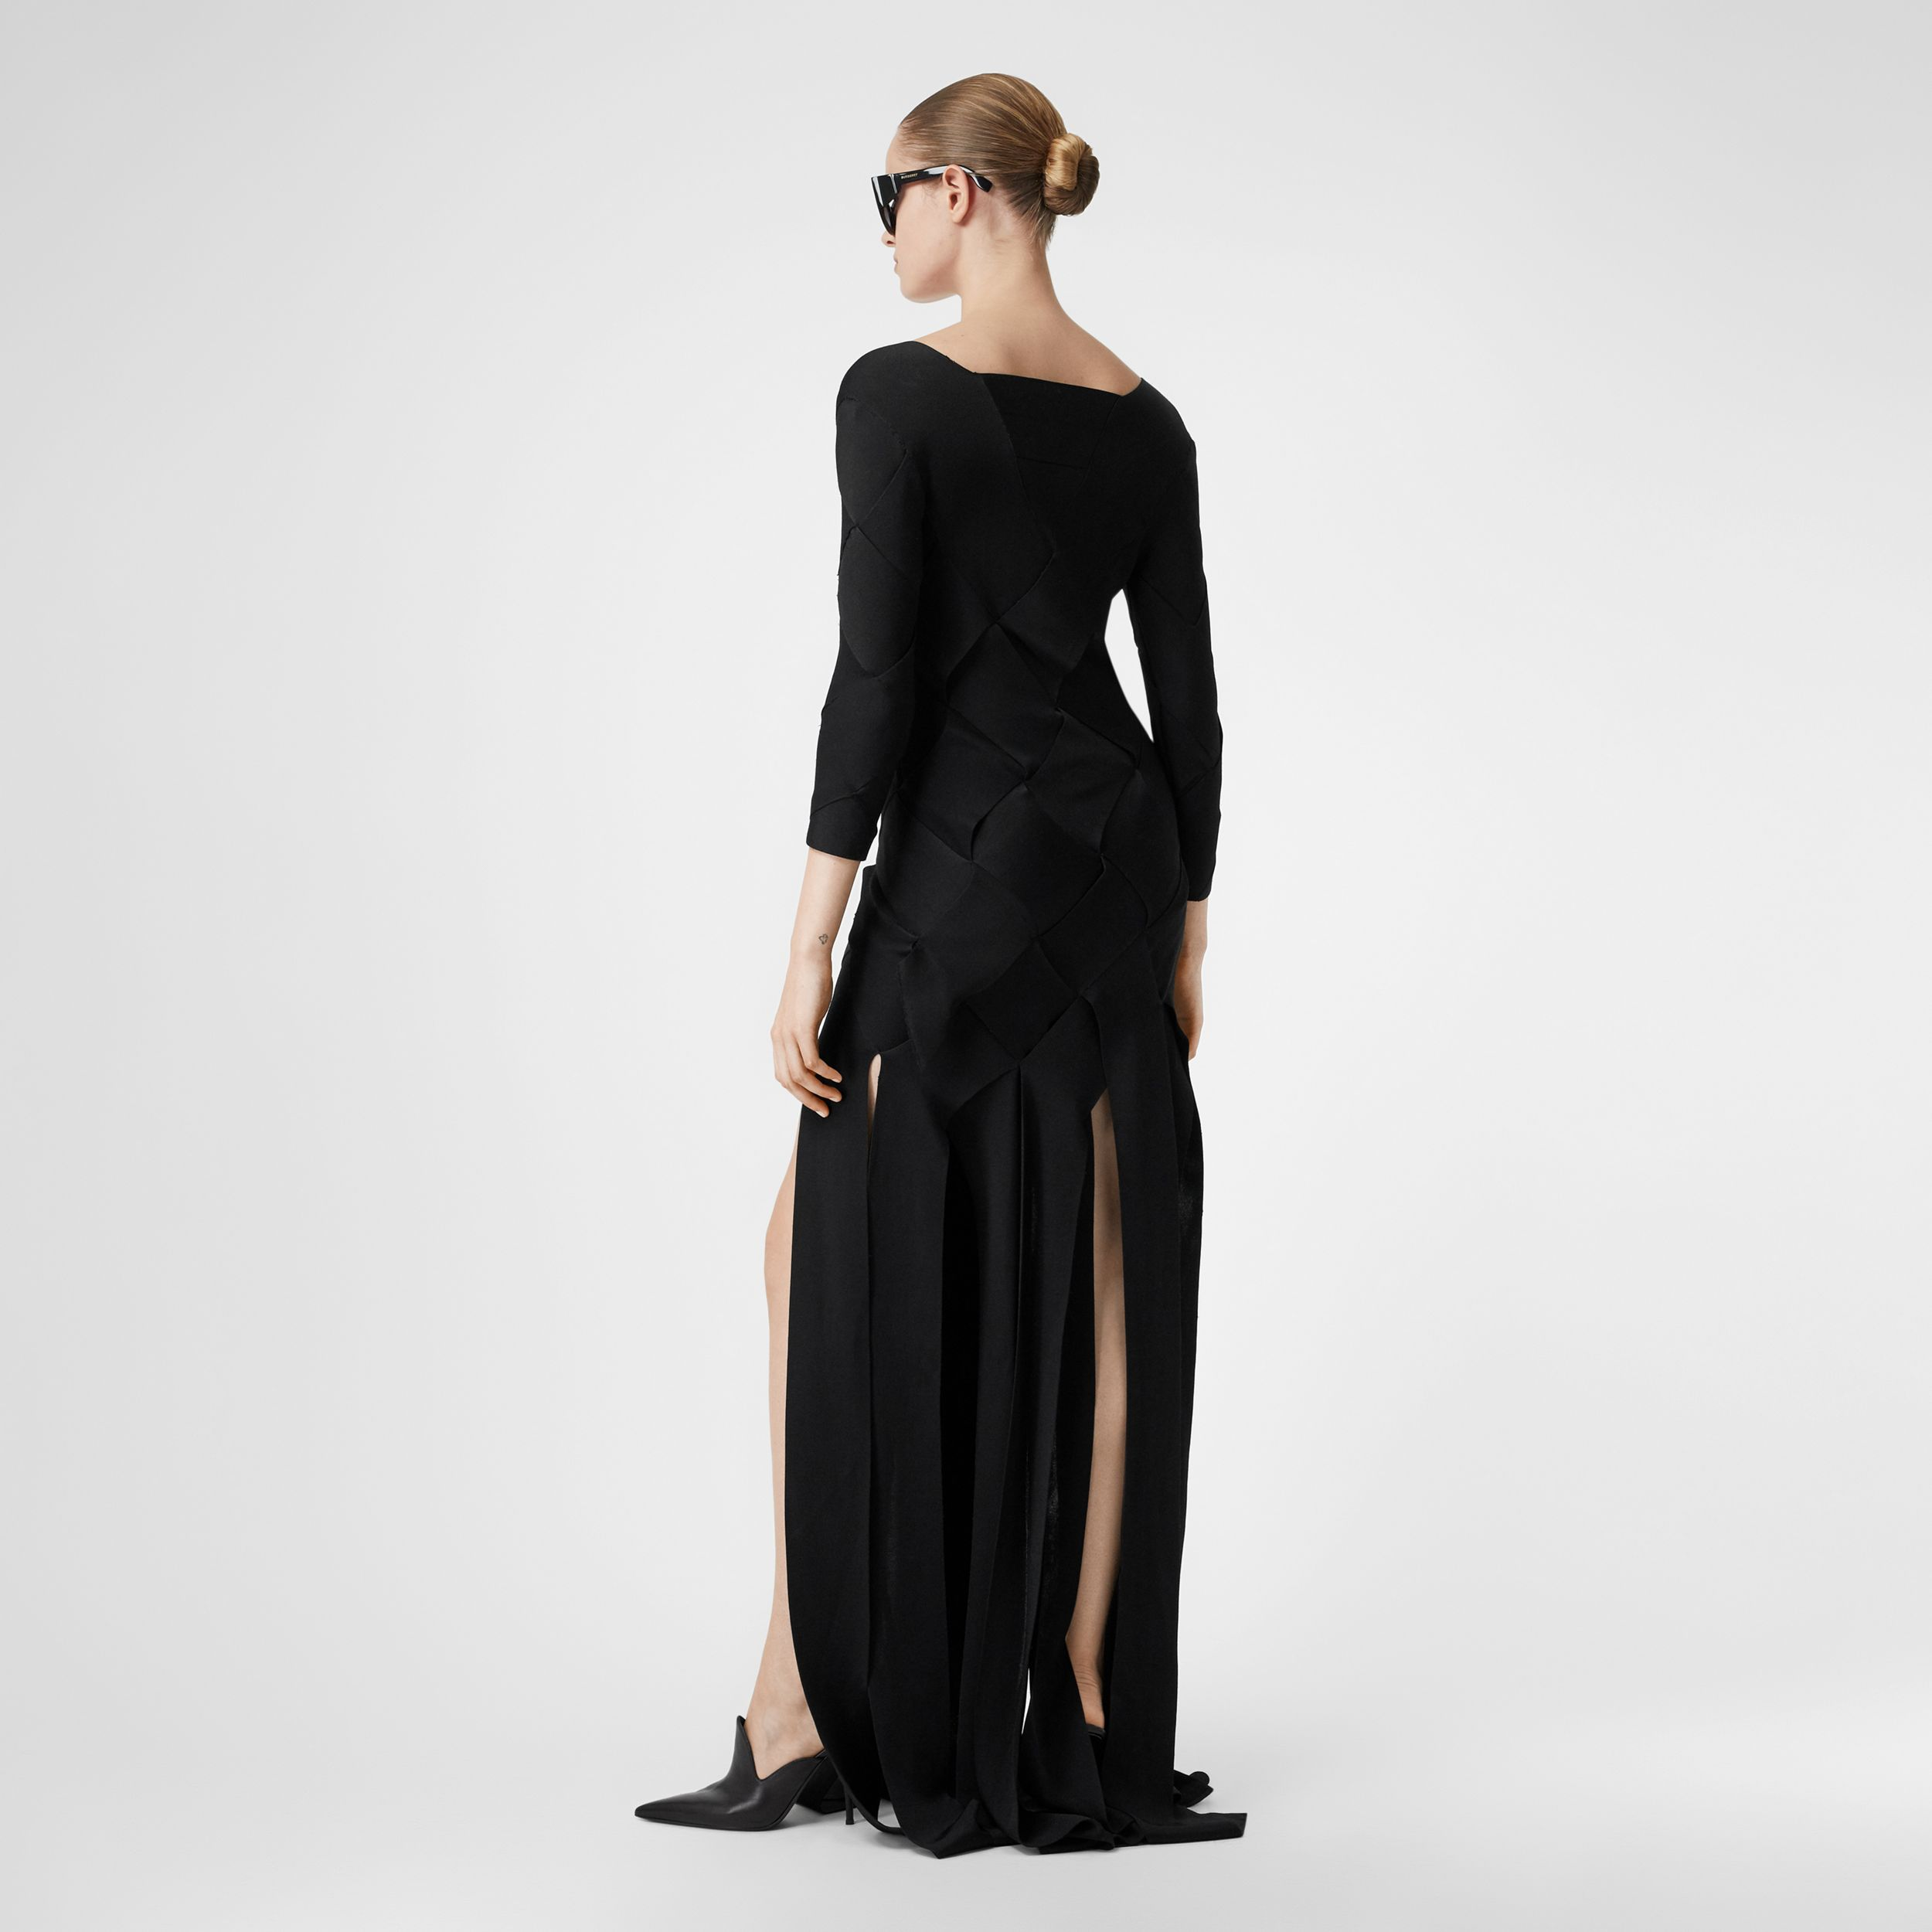 Long-sleeve Panelled Knit Gown in Black - Women | Burberry - 3